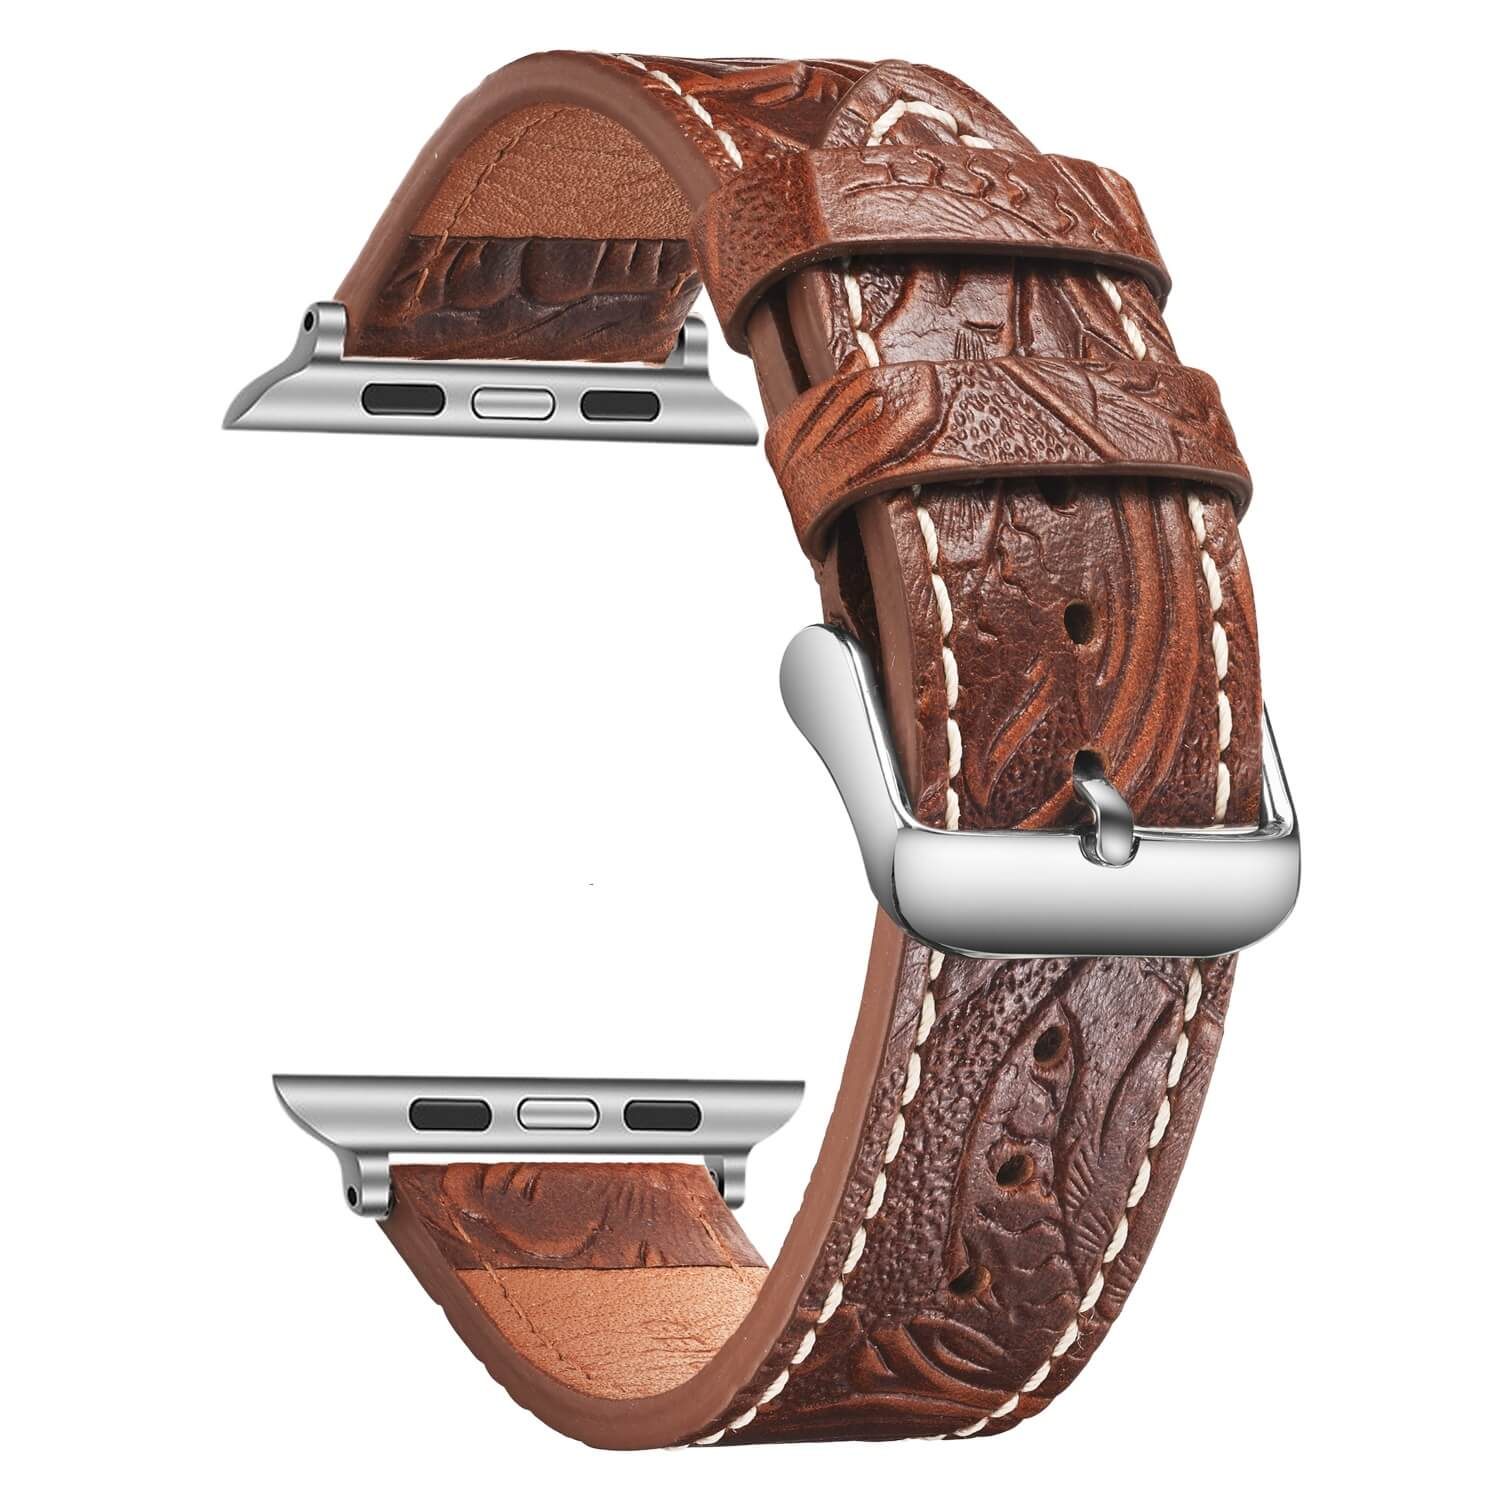 Simai Top leather wrist cuff watch straps company for Huawei-2